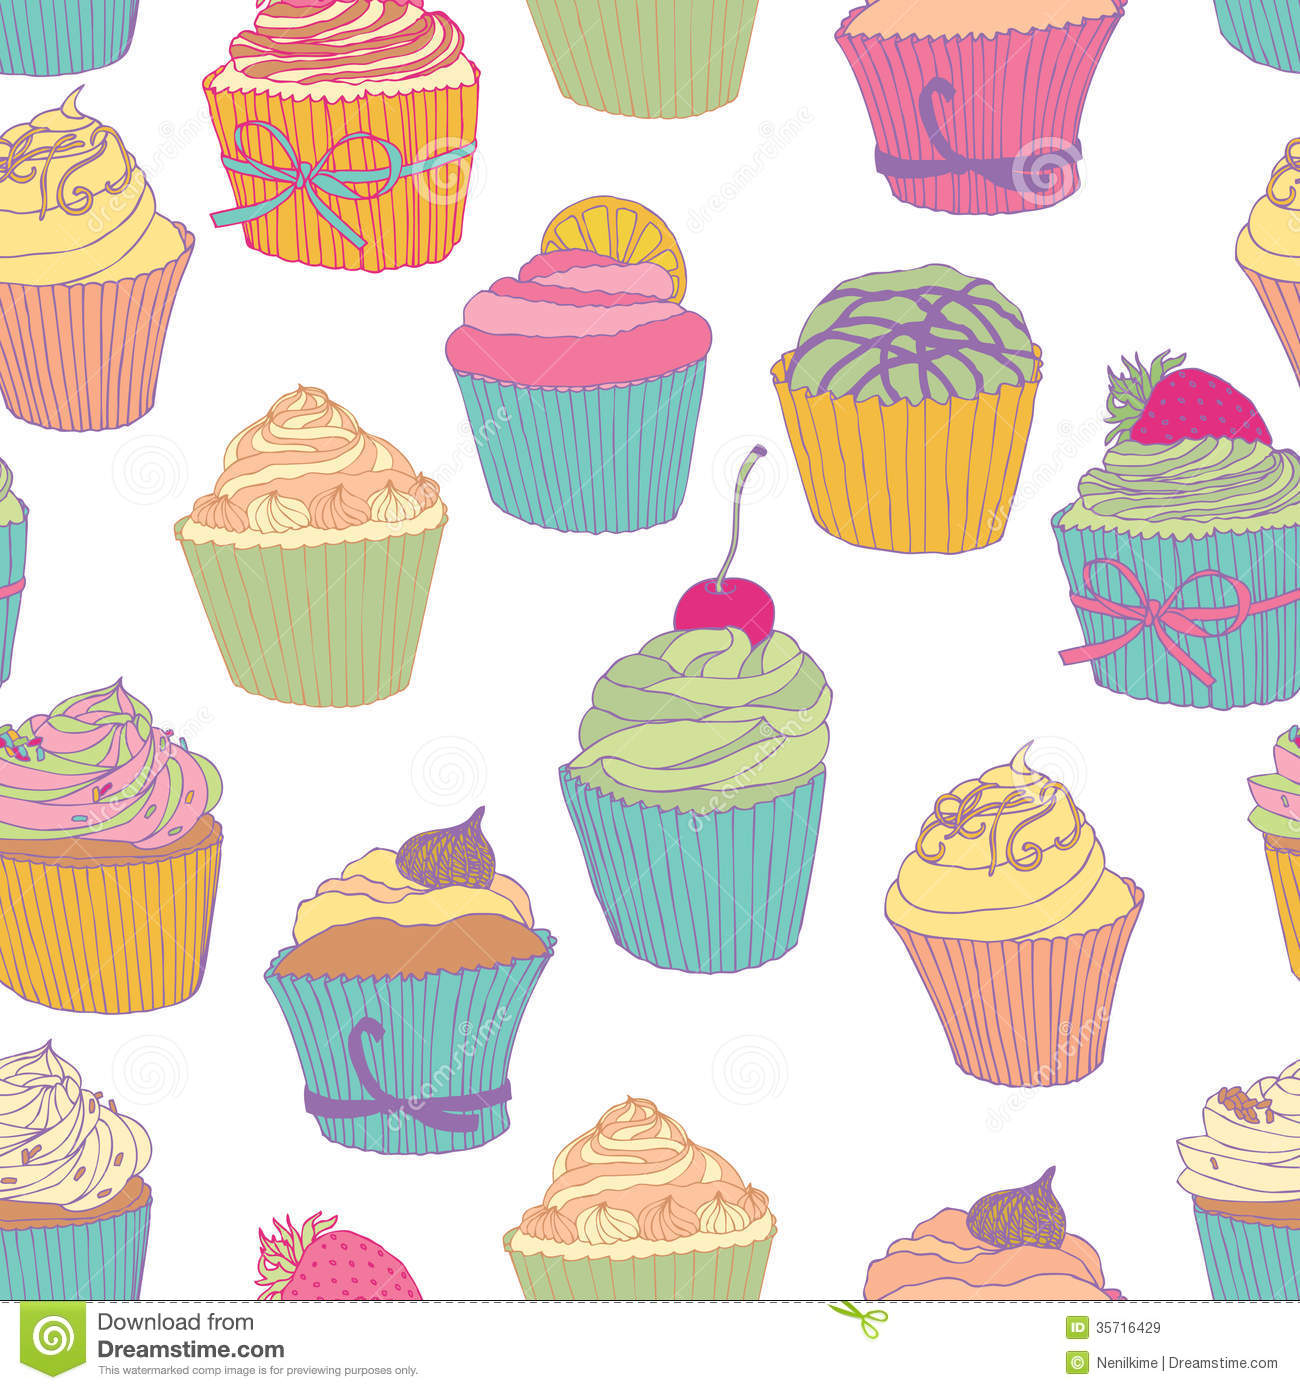 Cupcake pattern stock vector. Image of party, cubes, diet